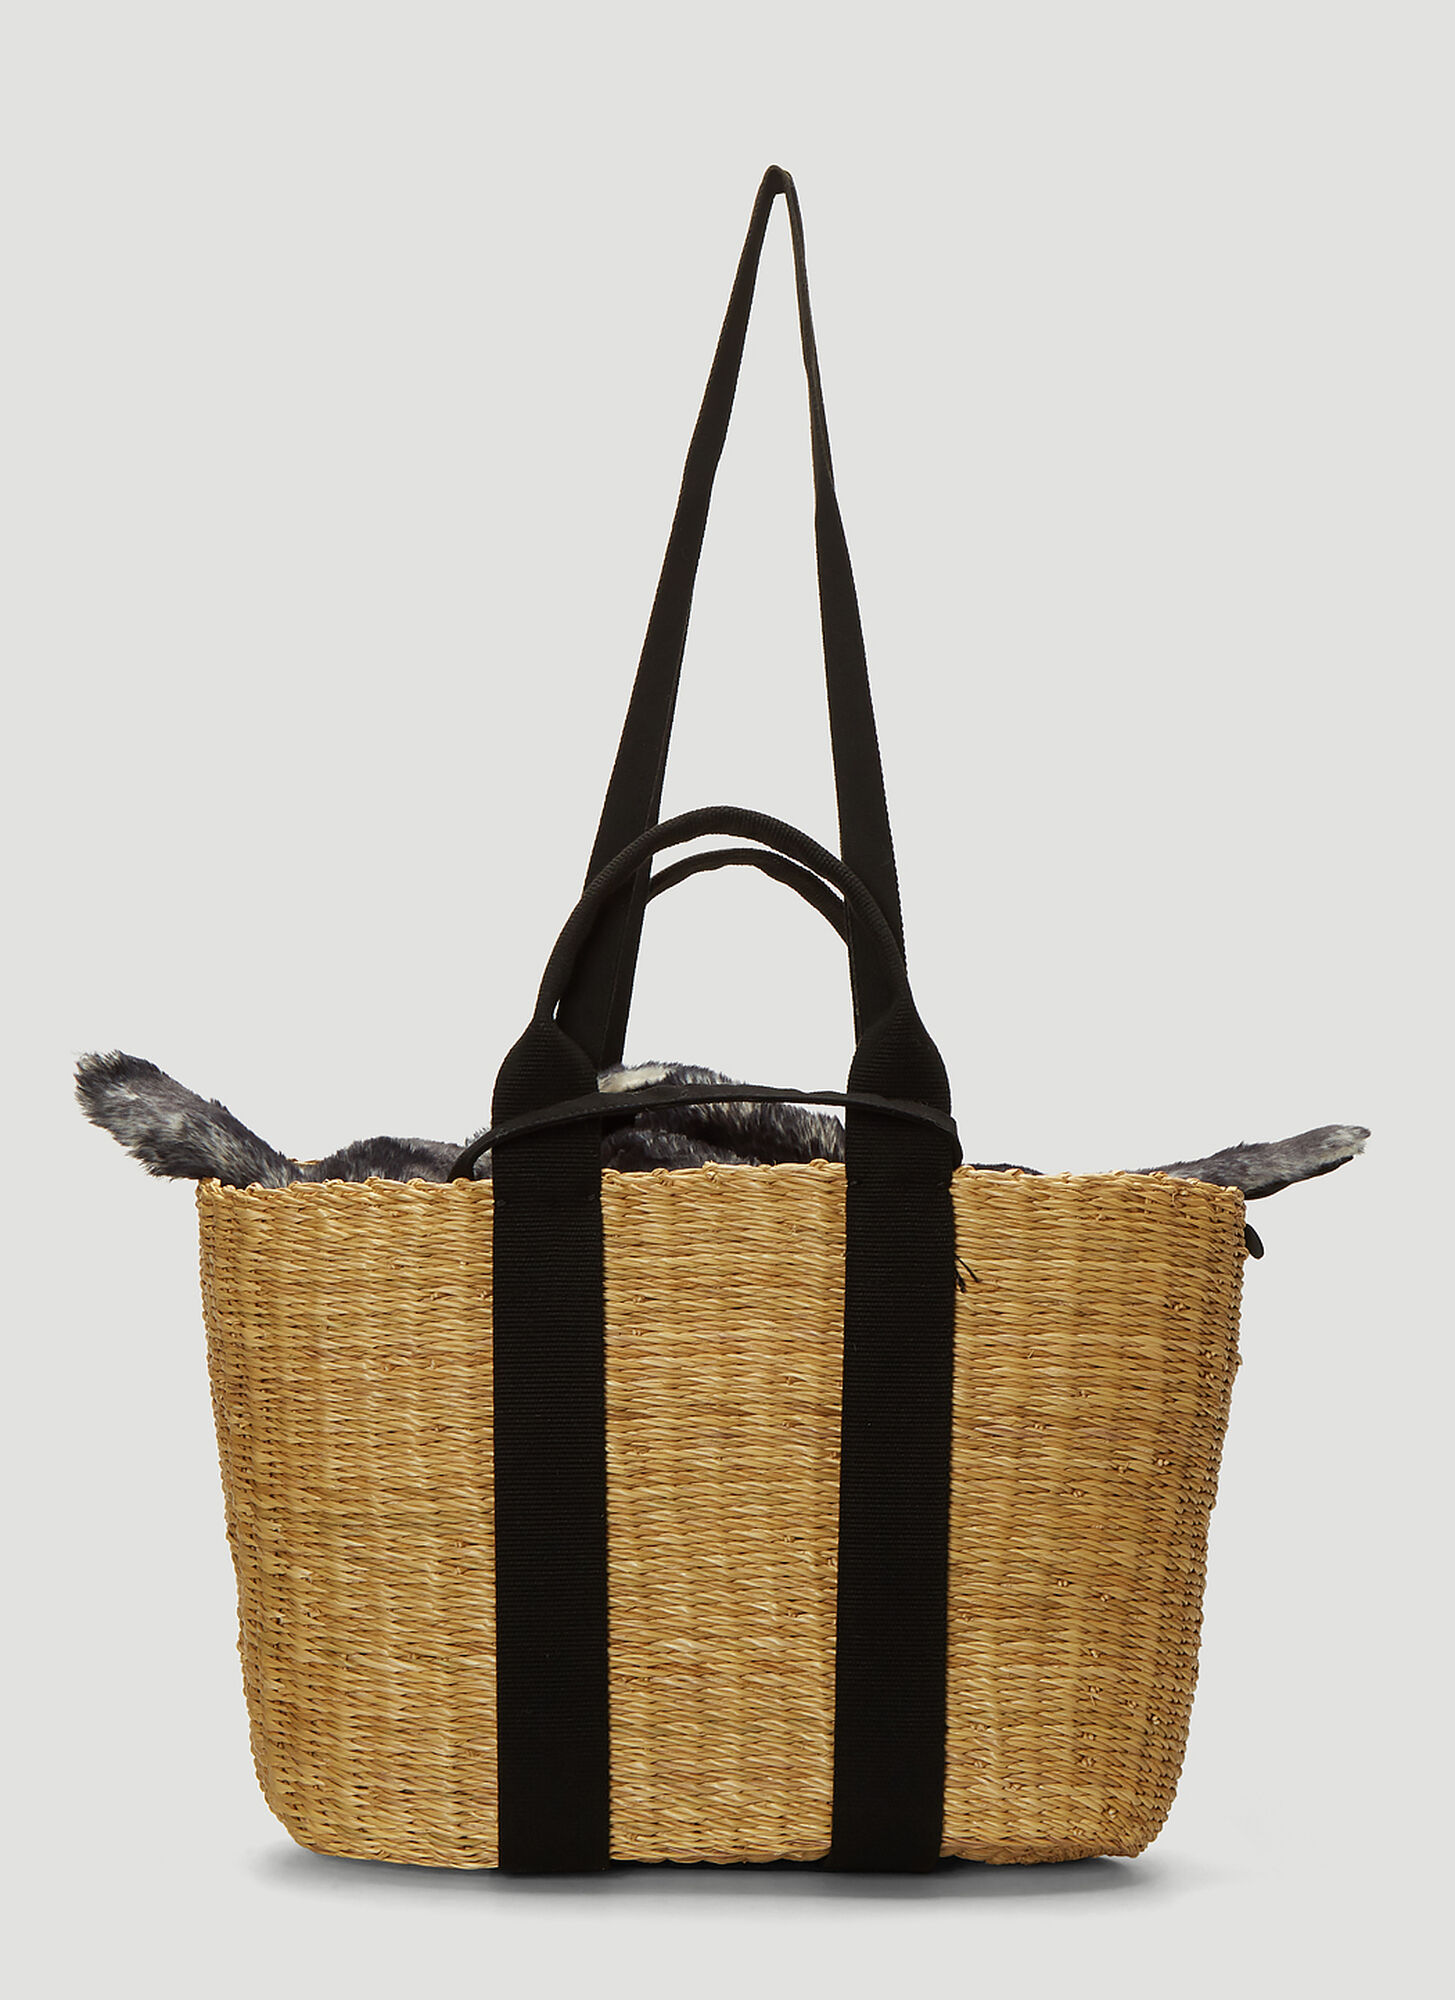 Muun Caba Basket Bag in Beige